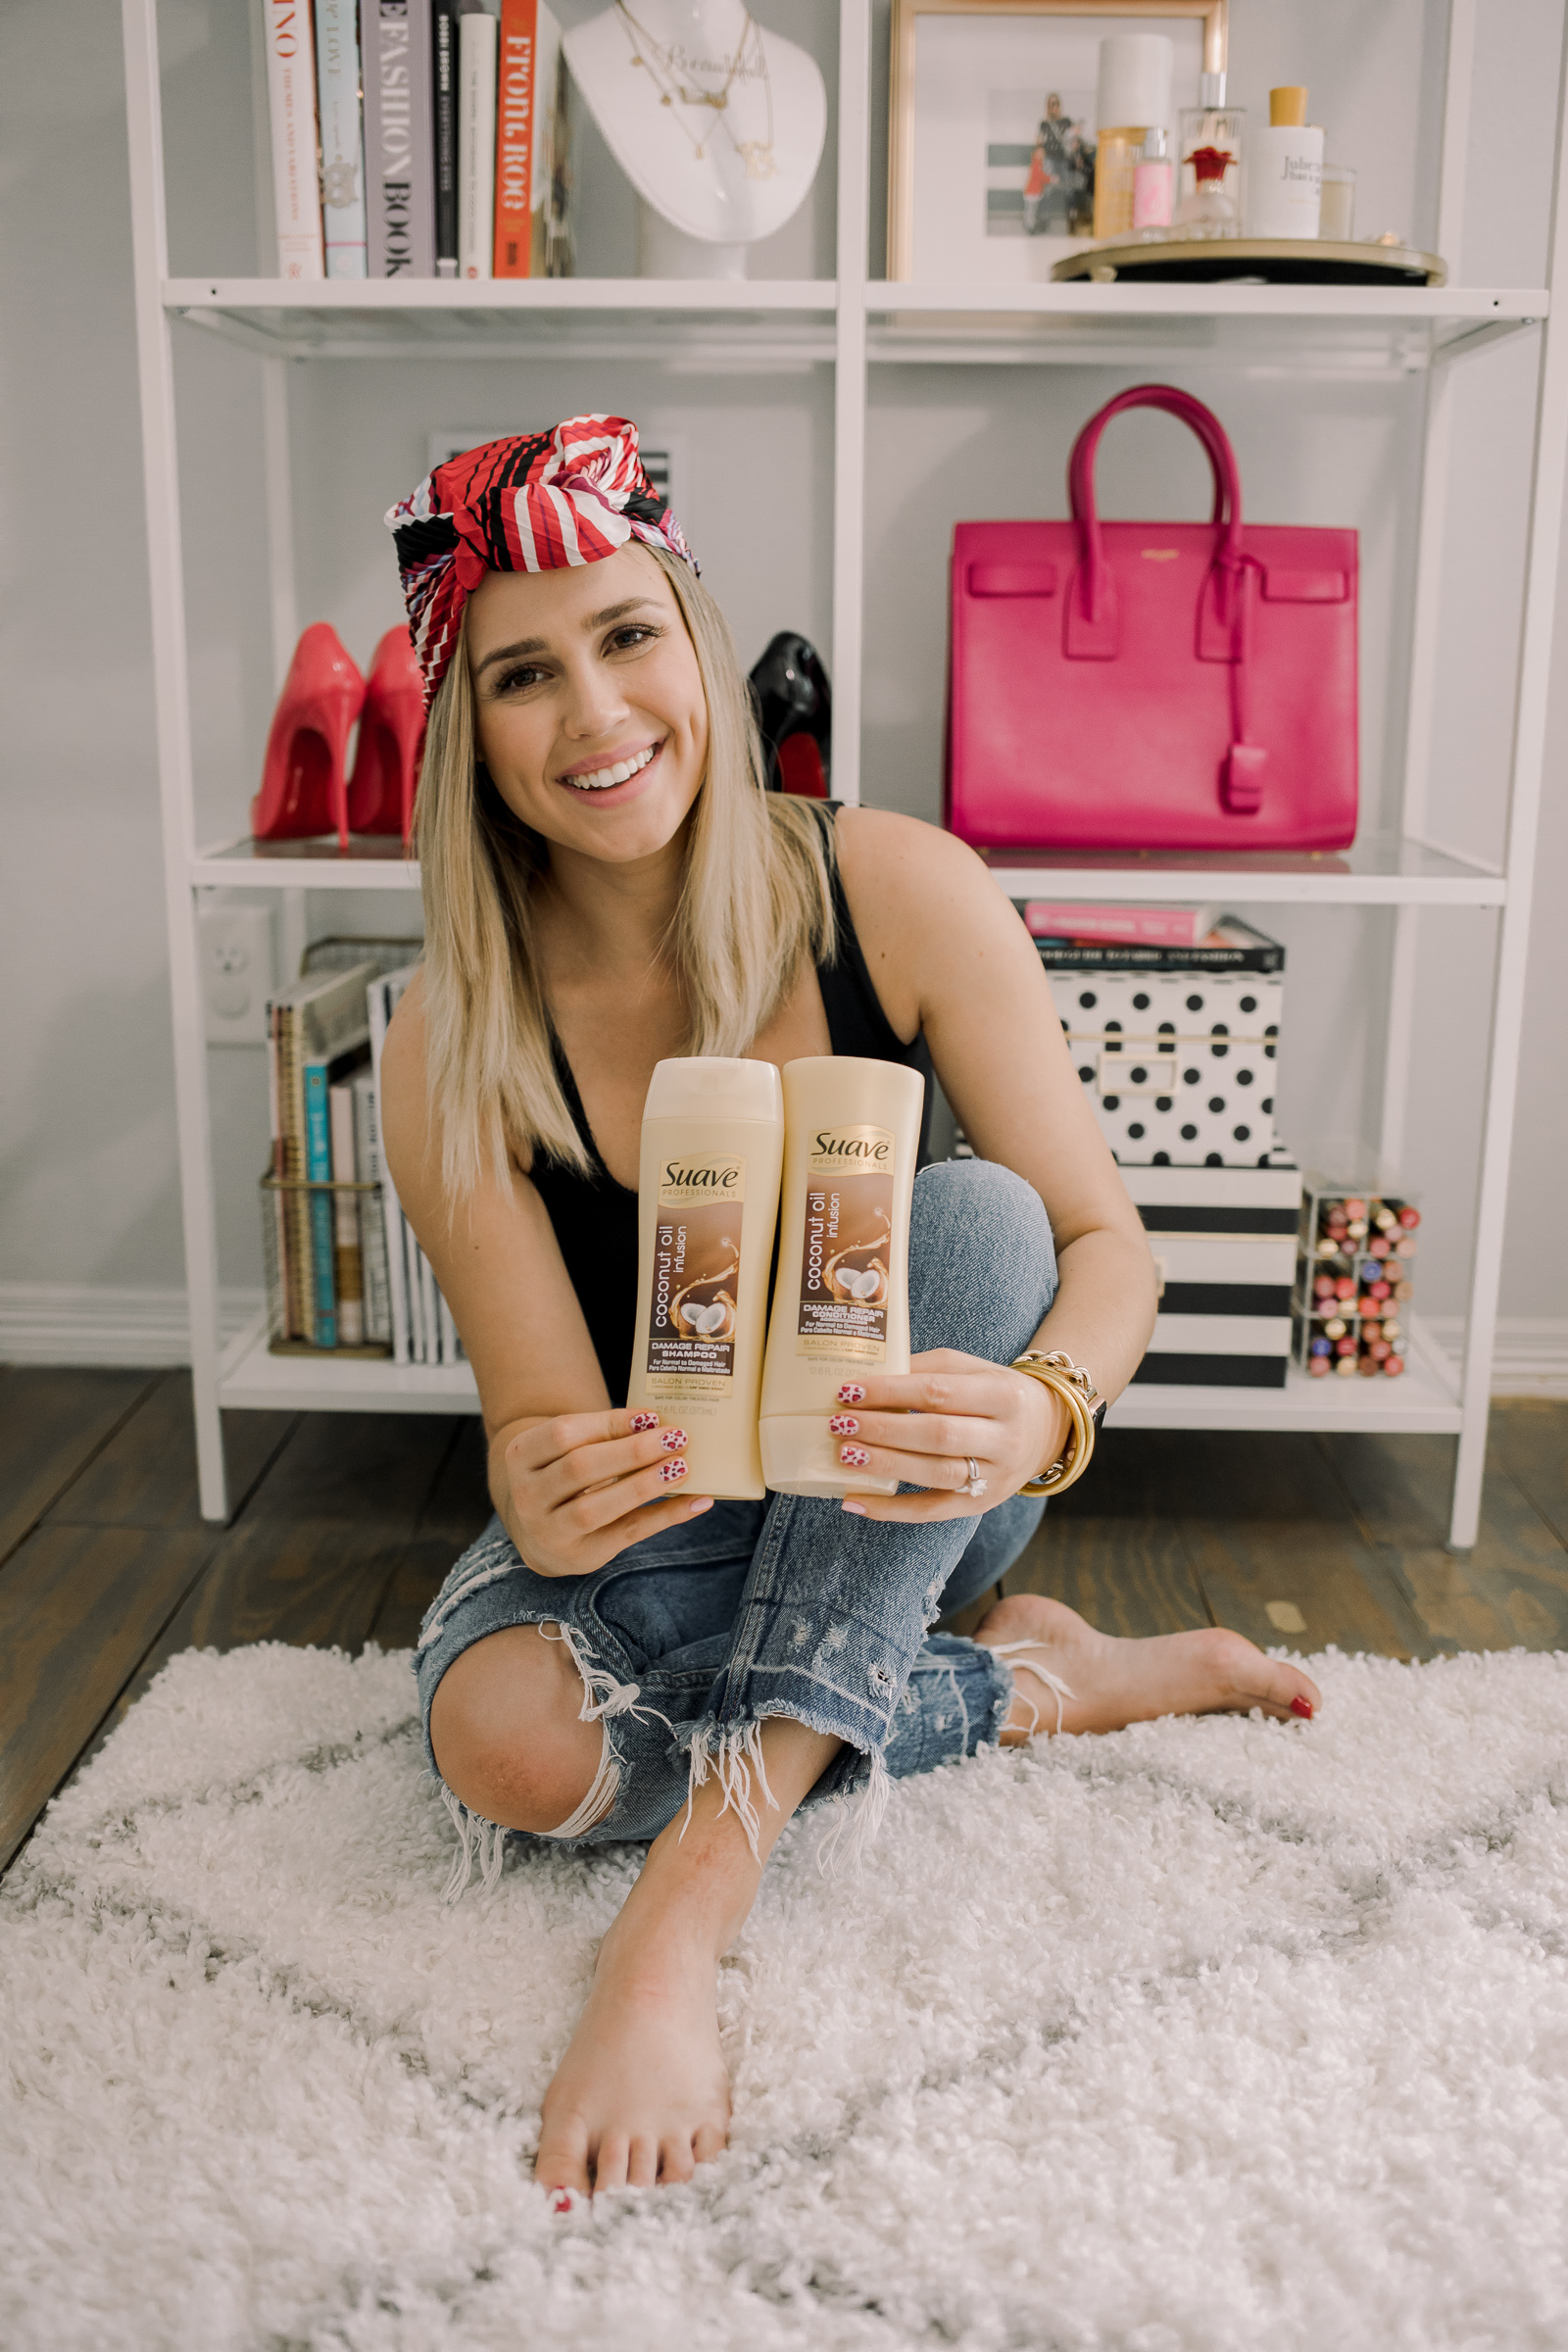 Houston Beauty blogger Uptown with Elly Brown shares 3 Ways to Wear A Headscarf this Spring that will leave you longing for warmer weather!